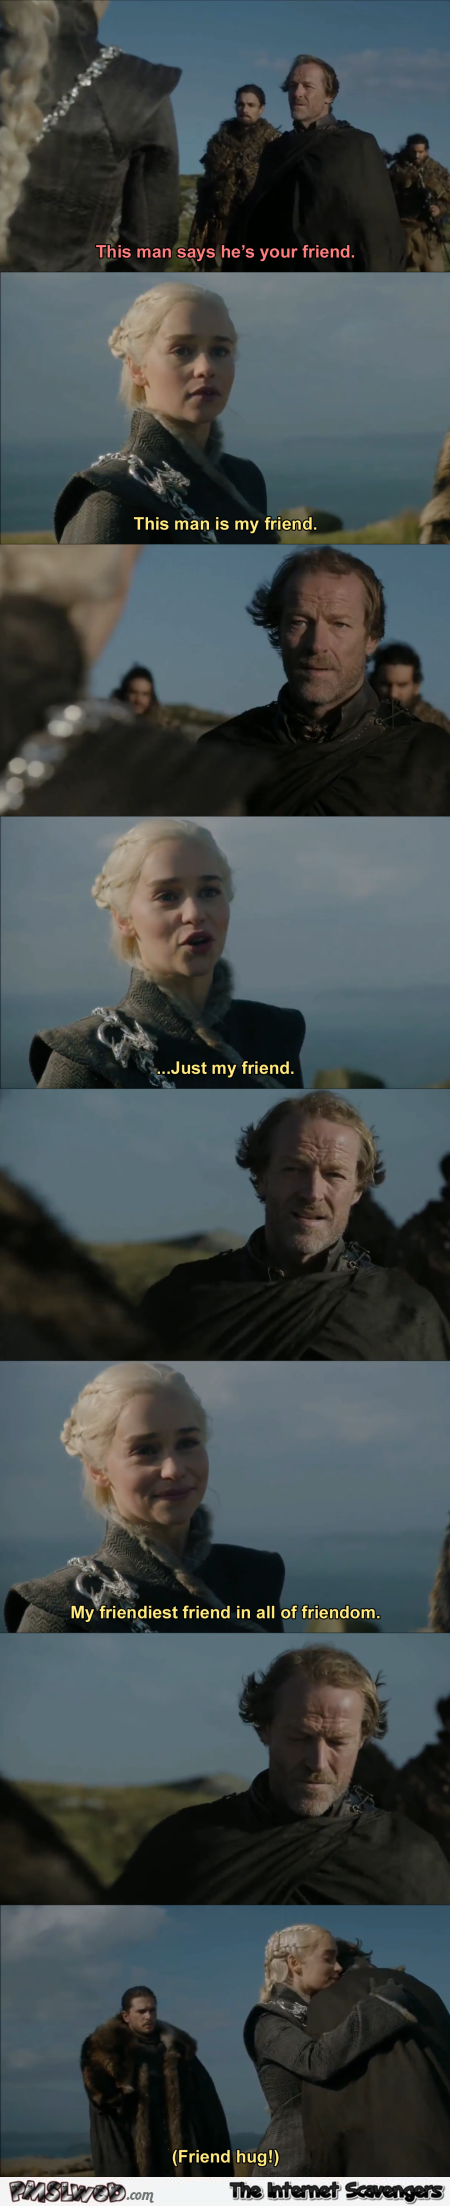 Jorah Mormont is my friend funny Game of Thrones meme @PMSLweb.com